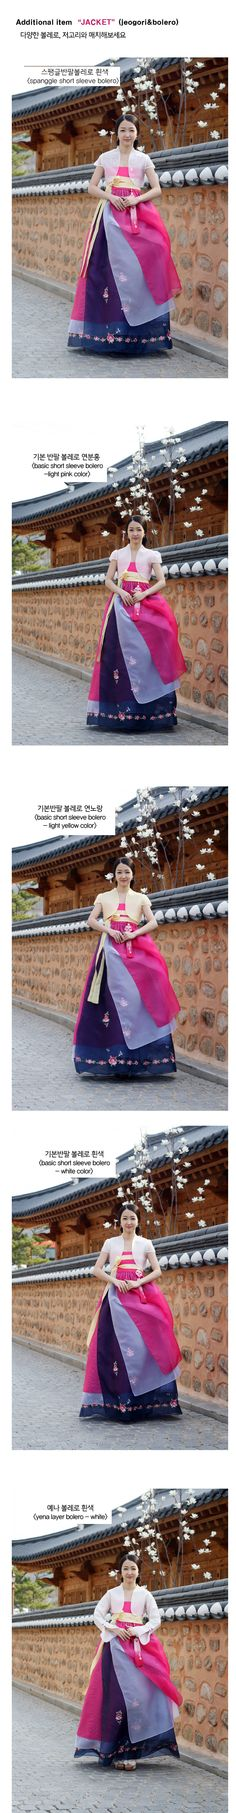 A hanbok is the traditional Korean dress. The hanbok dress is a modernized hanbok.